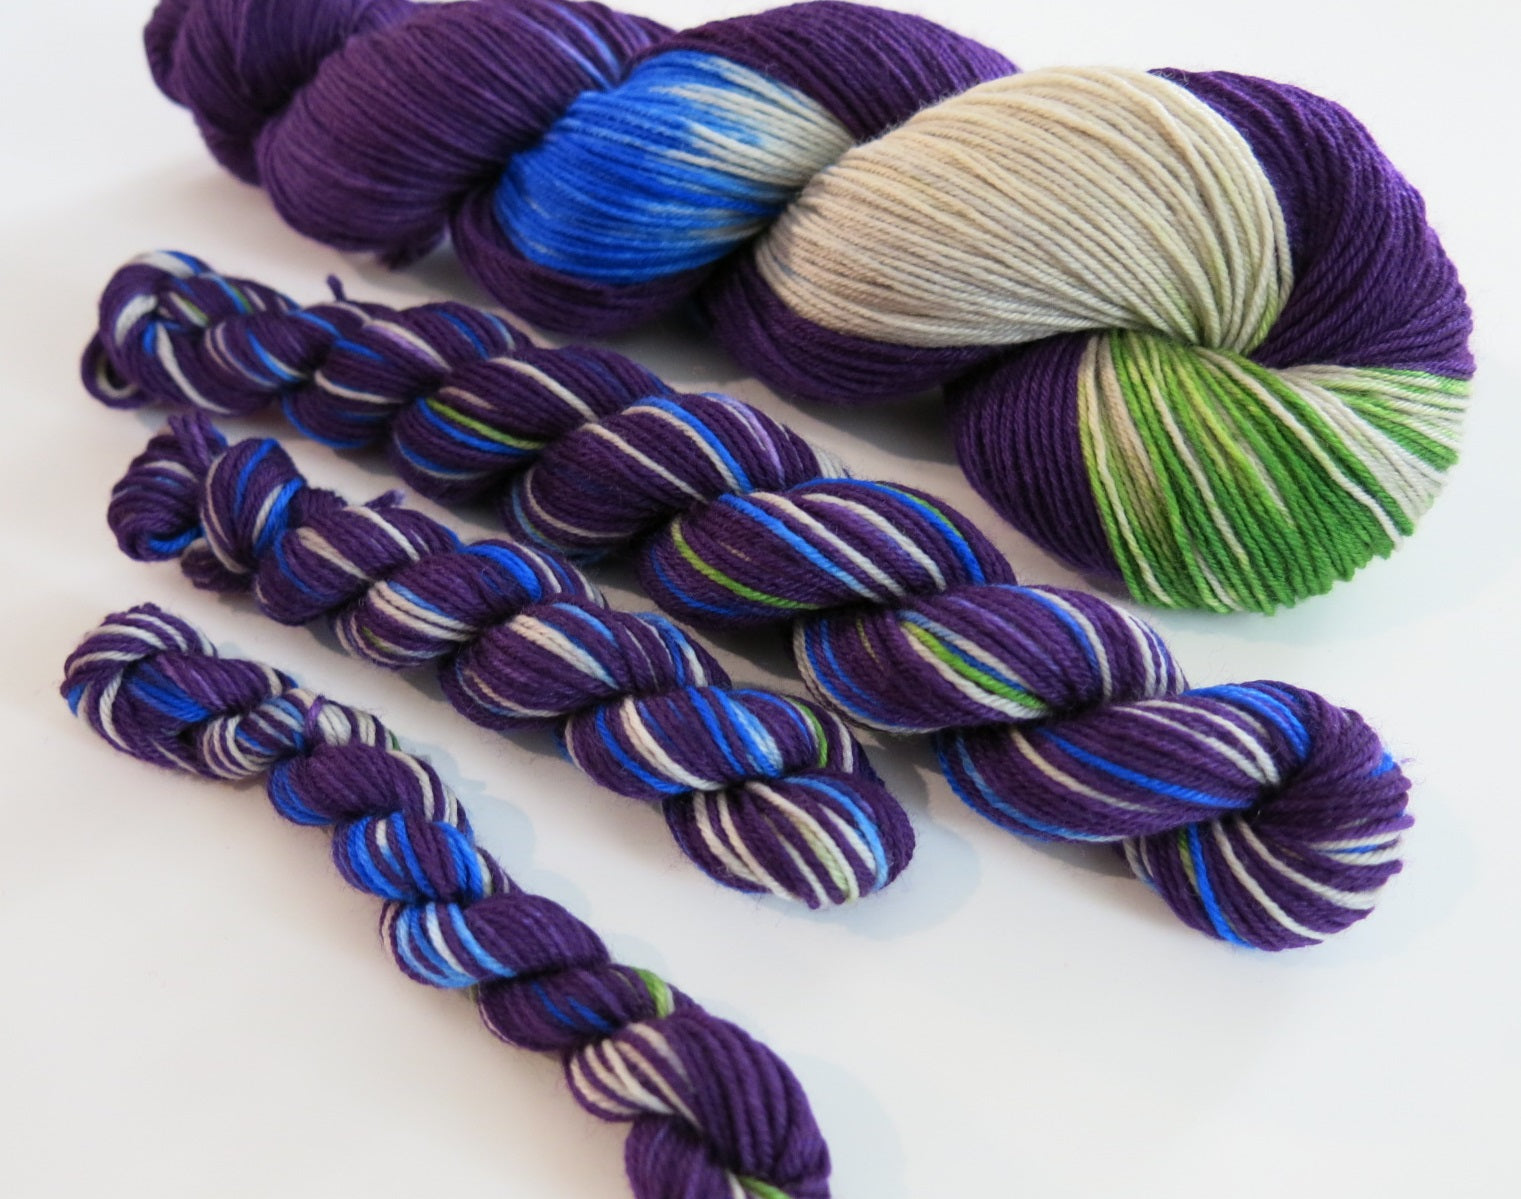 sock yarn mini skeins in 20g and 10g sizes